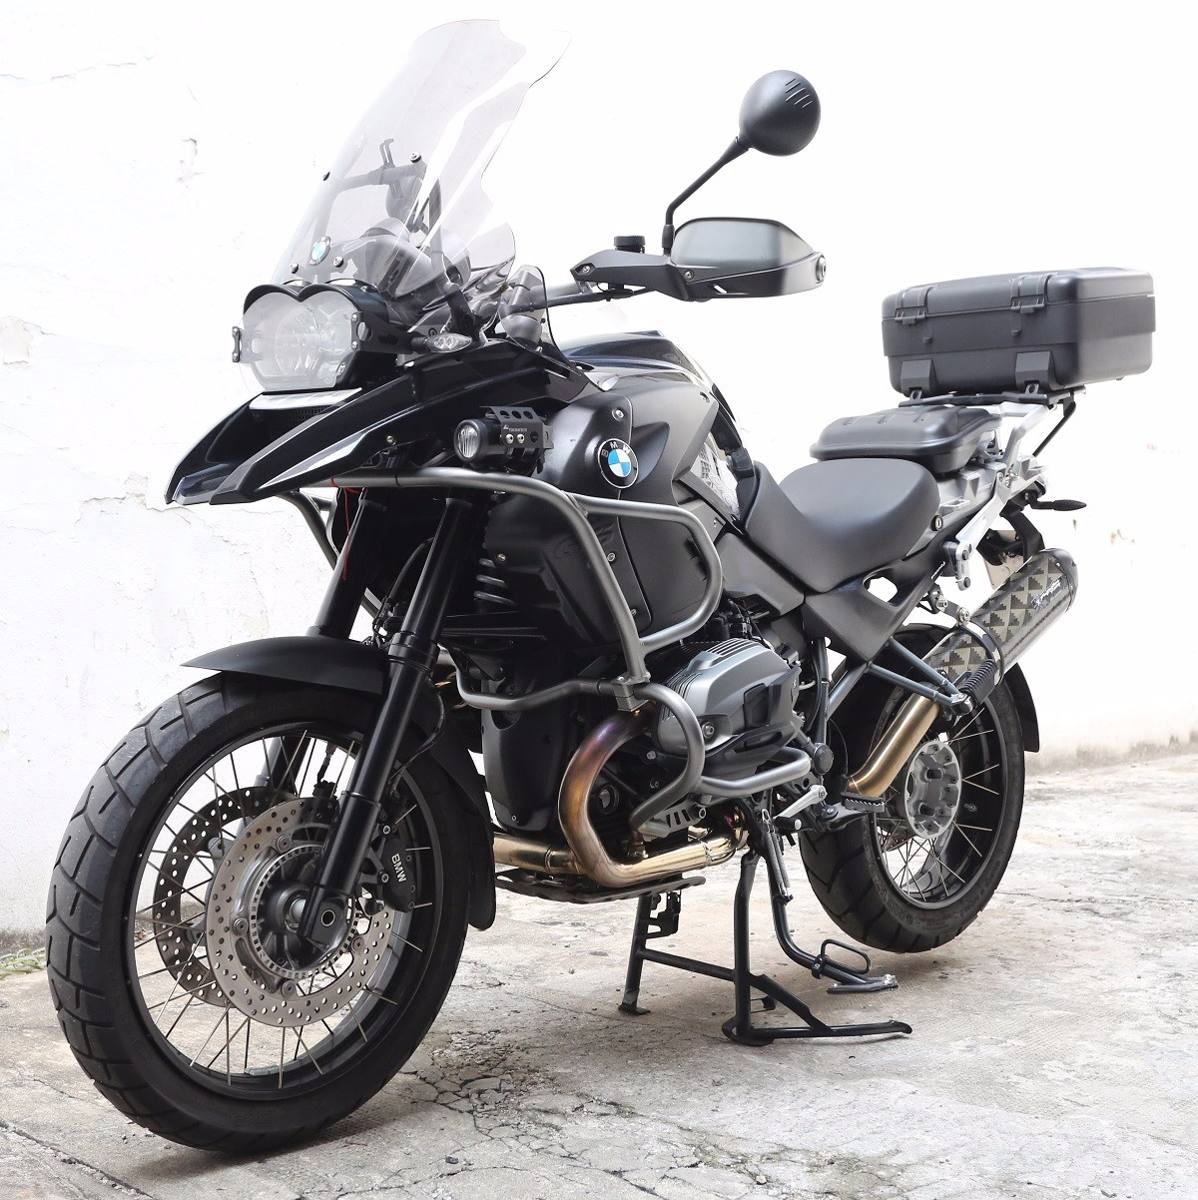 BMW R1200GS Triple Black images #8713